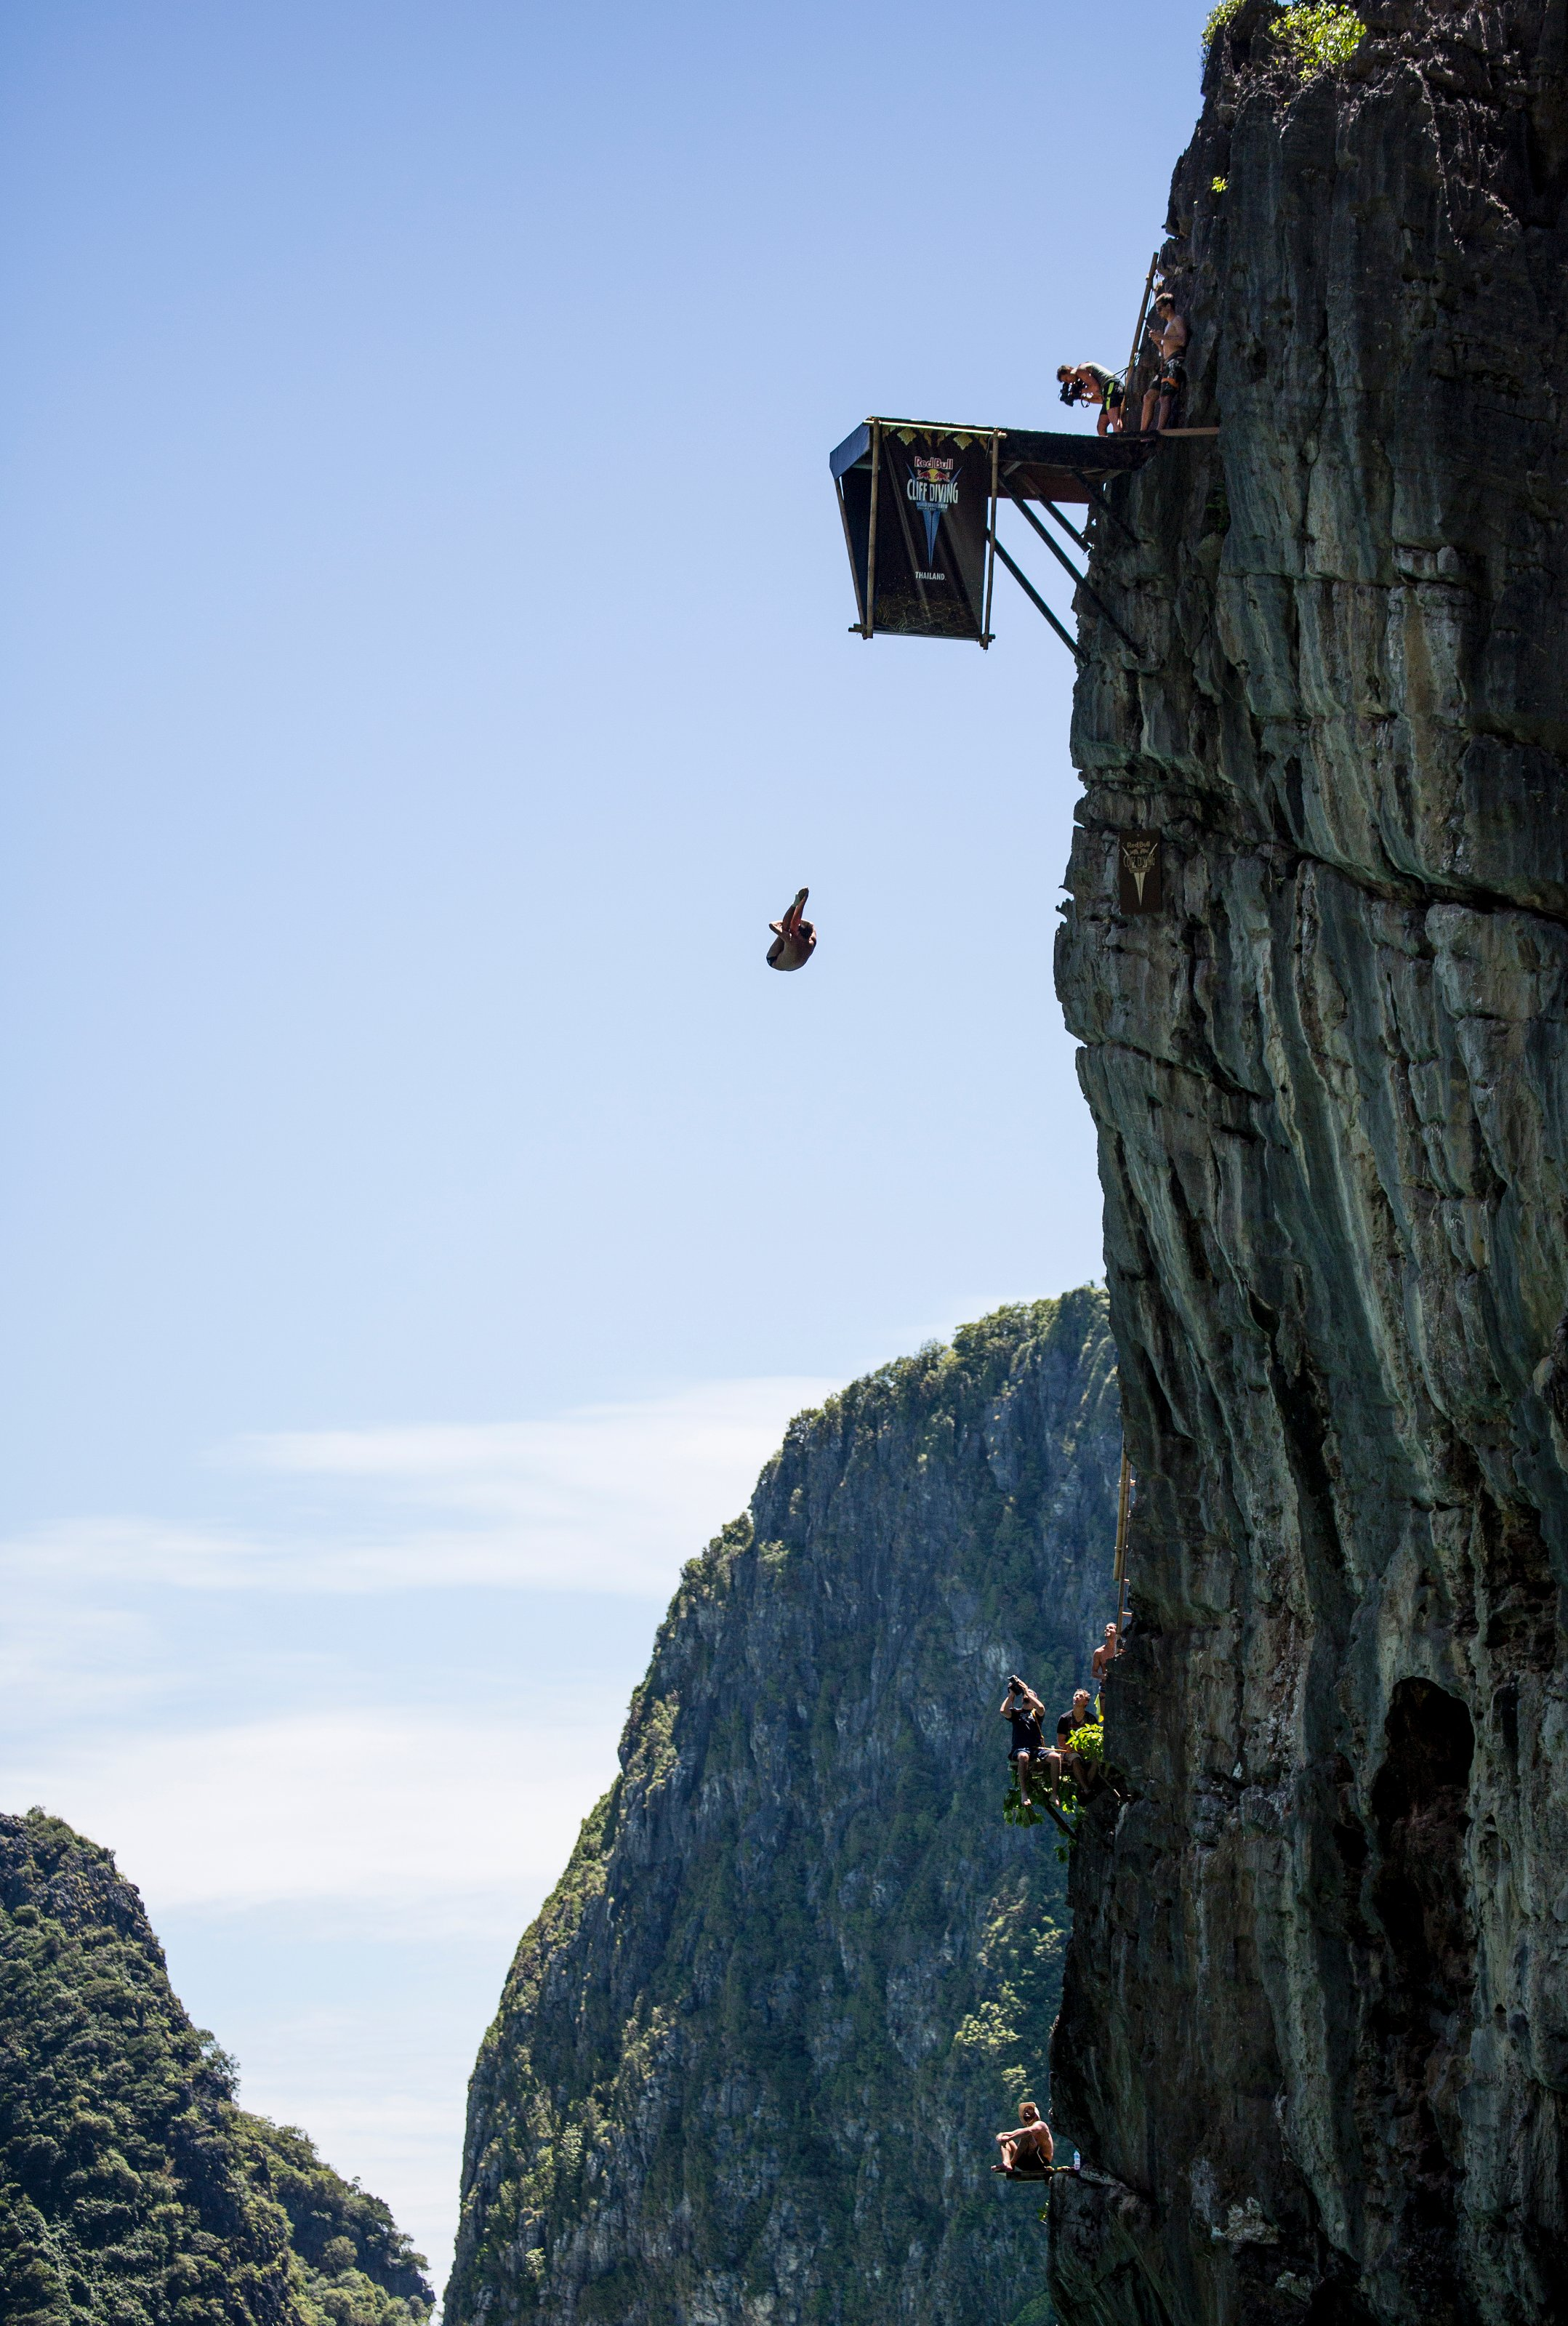 Blake Aldridge blog: Red Bull Cliff Diving World Series finishes on a high